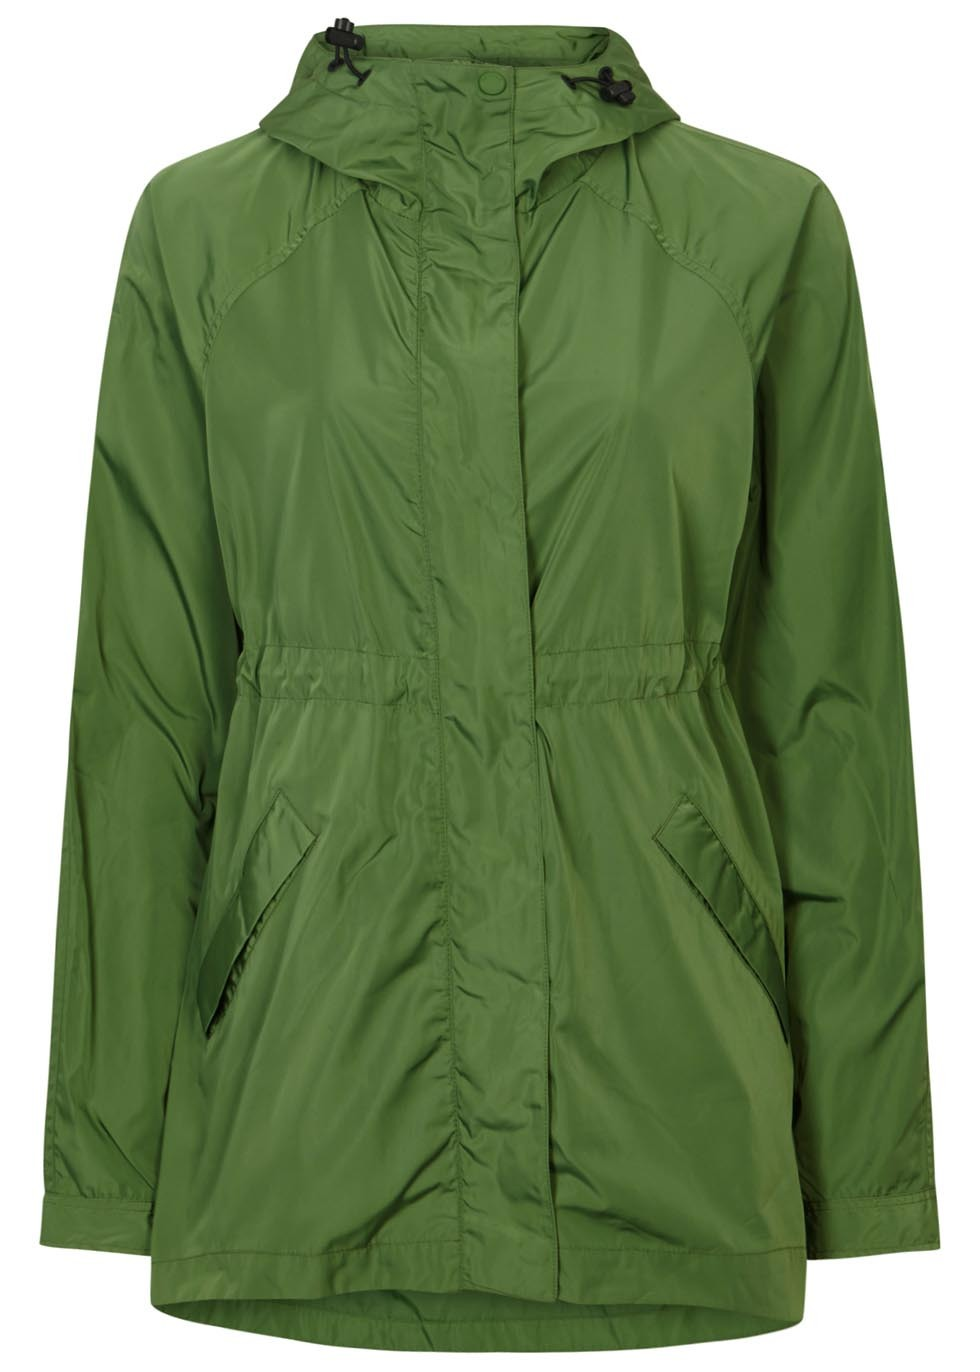 Green Lightweight Shell Jacket - pattern: plain; length: below the bottom; collar: funnel; style: mac; back detail: hood; predominant colour: emerald green; occasions: casual; fit: straight cut (boxy); fibres: polyester/polyamide - 100%; sleeve length: long sleeve; sleeve style: standard; collar break: high; pattern type: fabric; texture group: other - light to midweight; season: s/s 2016; wardrobe: highlight